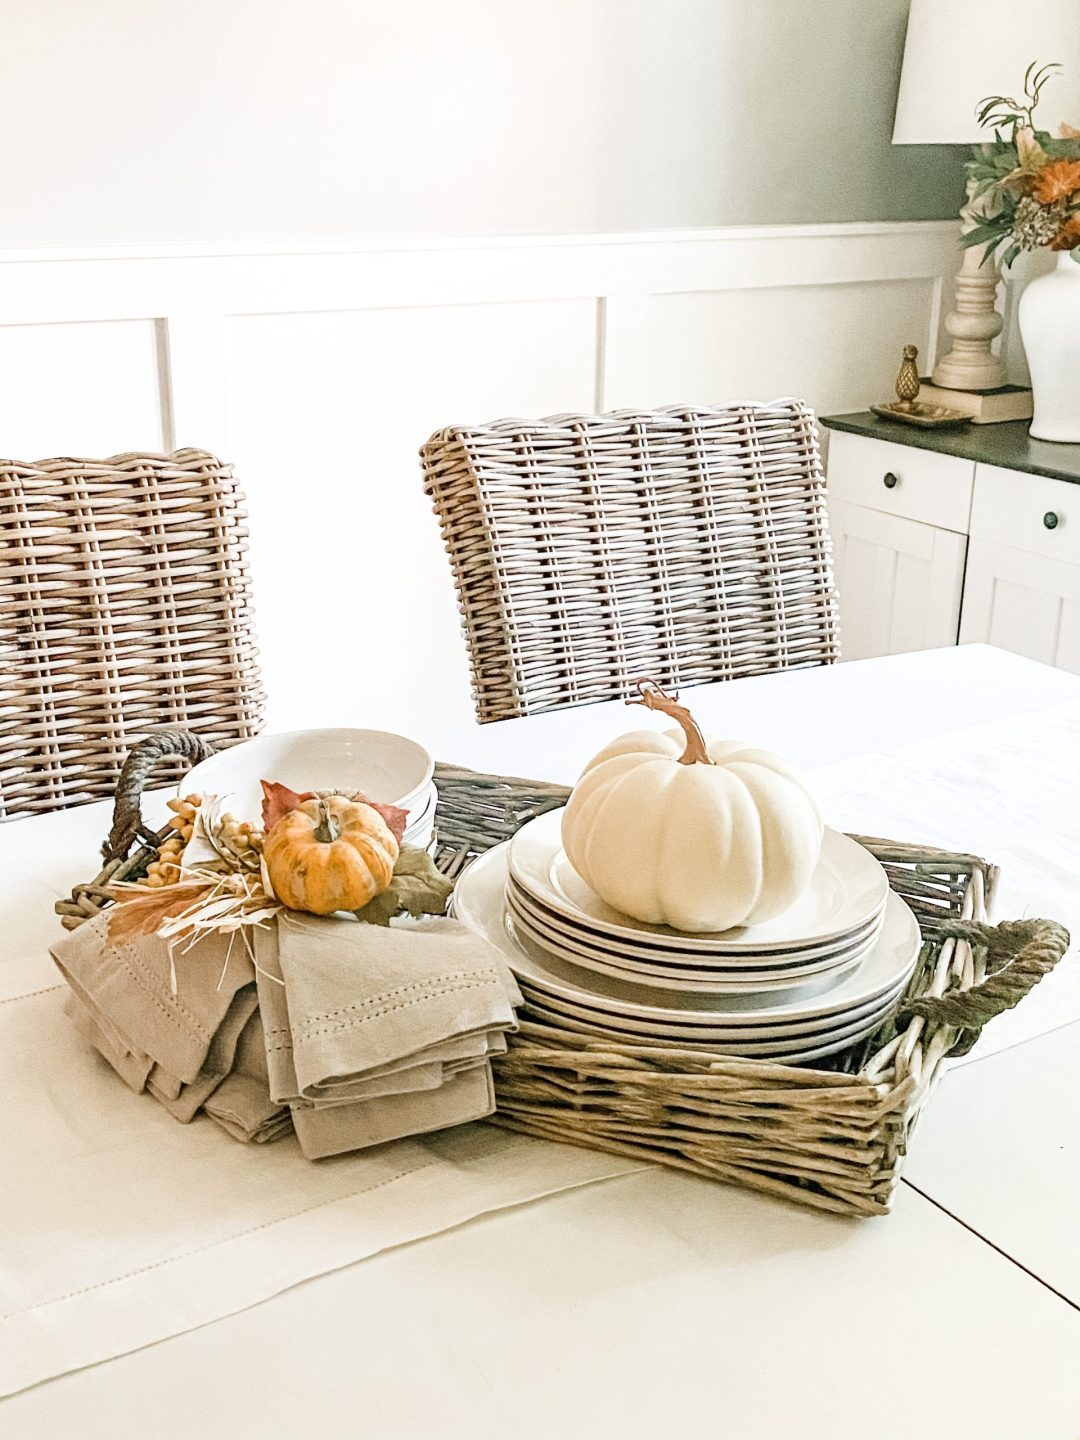 Pottery Barn Cambria Stoneware SALE! - The Kitchen & Dining Sale Event